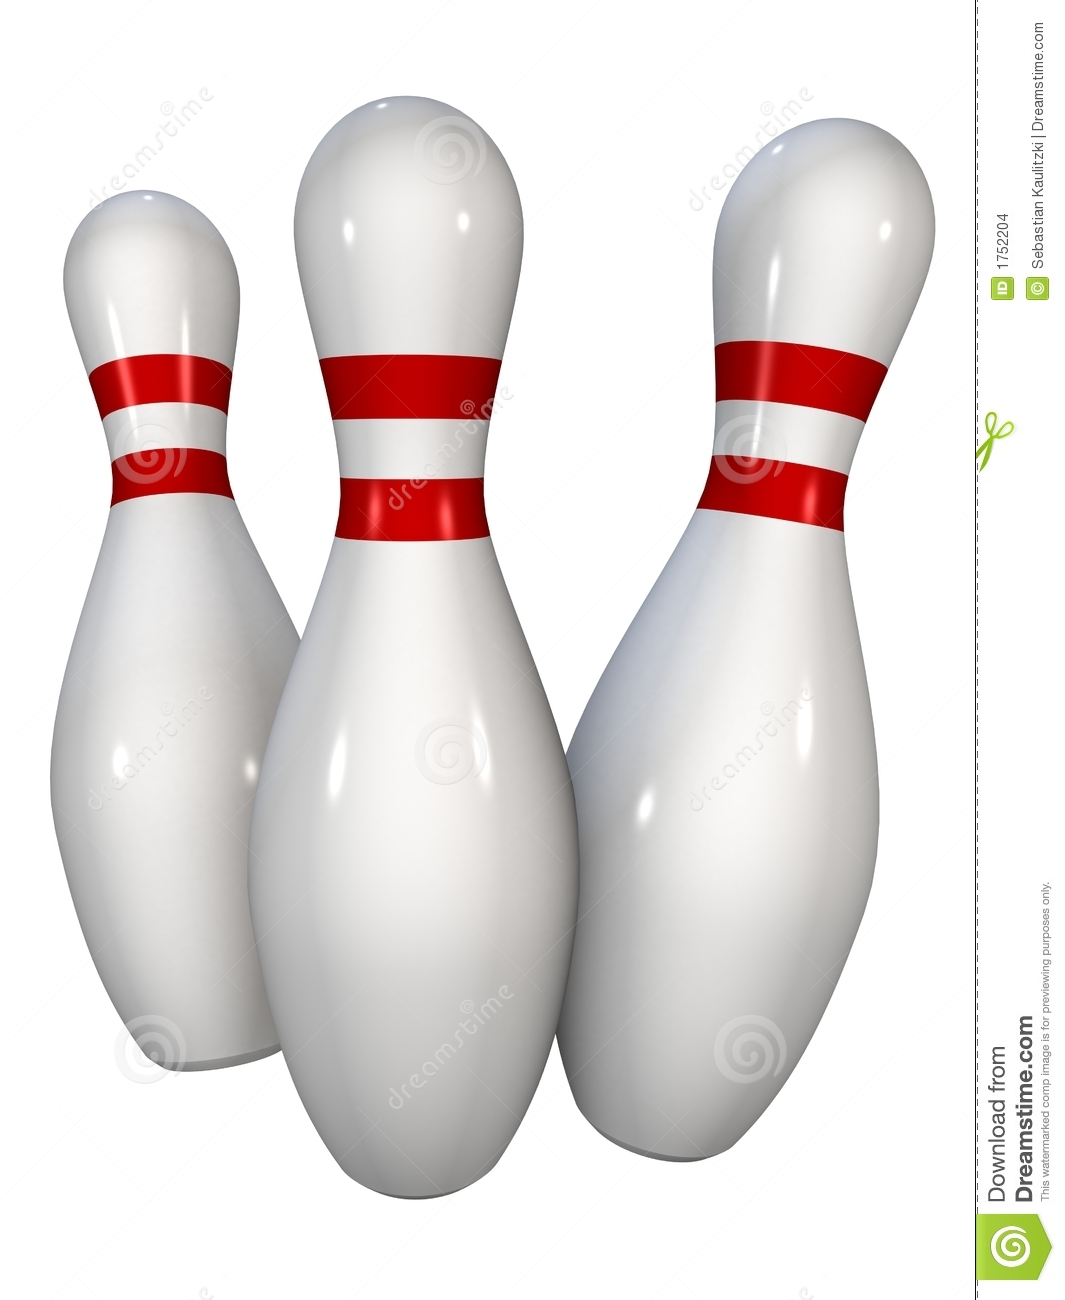 Bowling Pins Stock Images - Image: 1752204